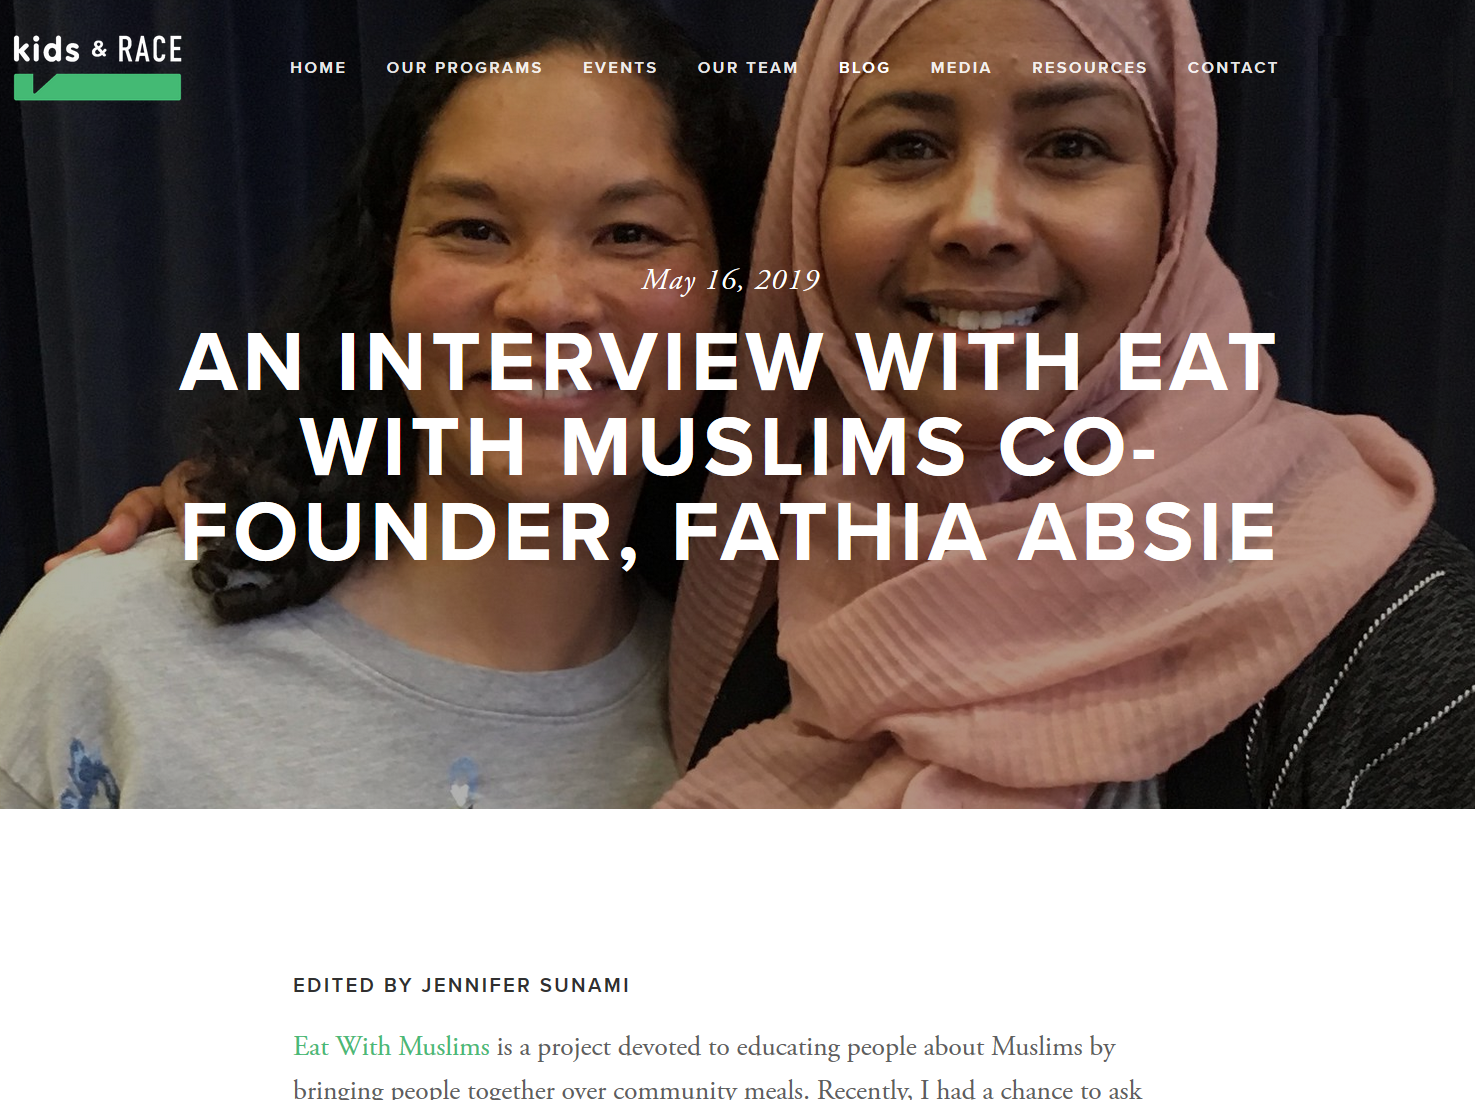 An Interview with Eat With Muslims Co-Founder, Fathia Absie - 5/16/2019: Eat With Muslims is a project devoted to educating people about Muslims by bringing people together over community meals. Recently, I had a chance to ask Eat With Muslims co-founder Fathia Absie how she got started, and she shared some of her fascinating story.